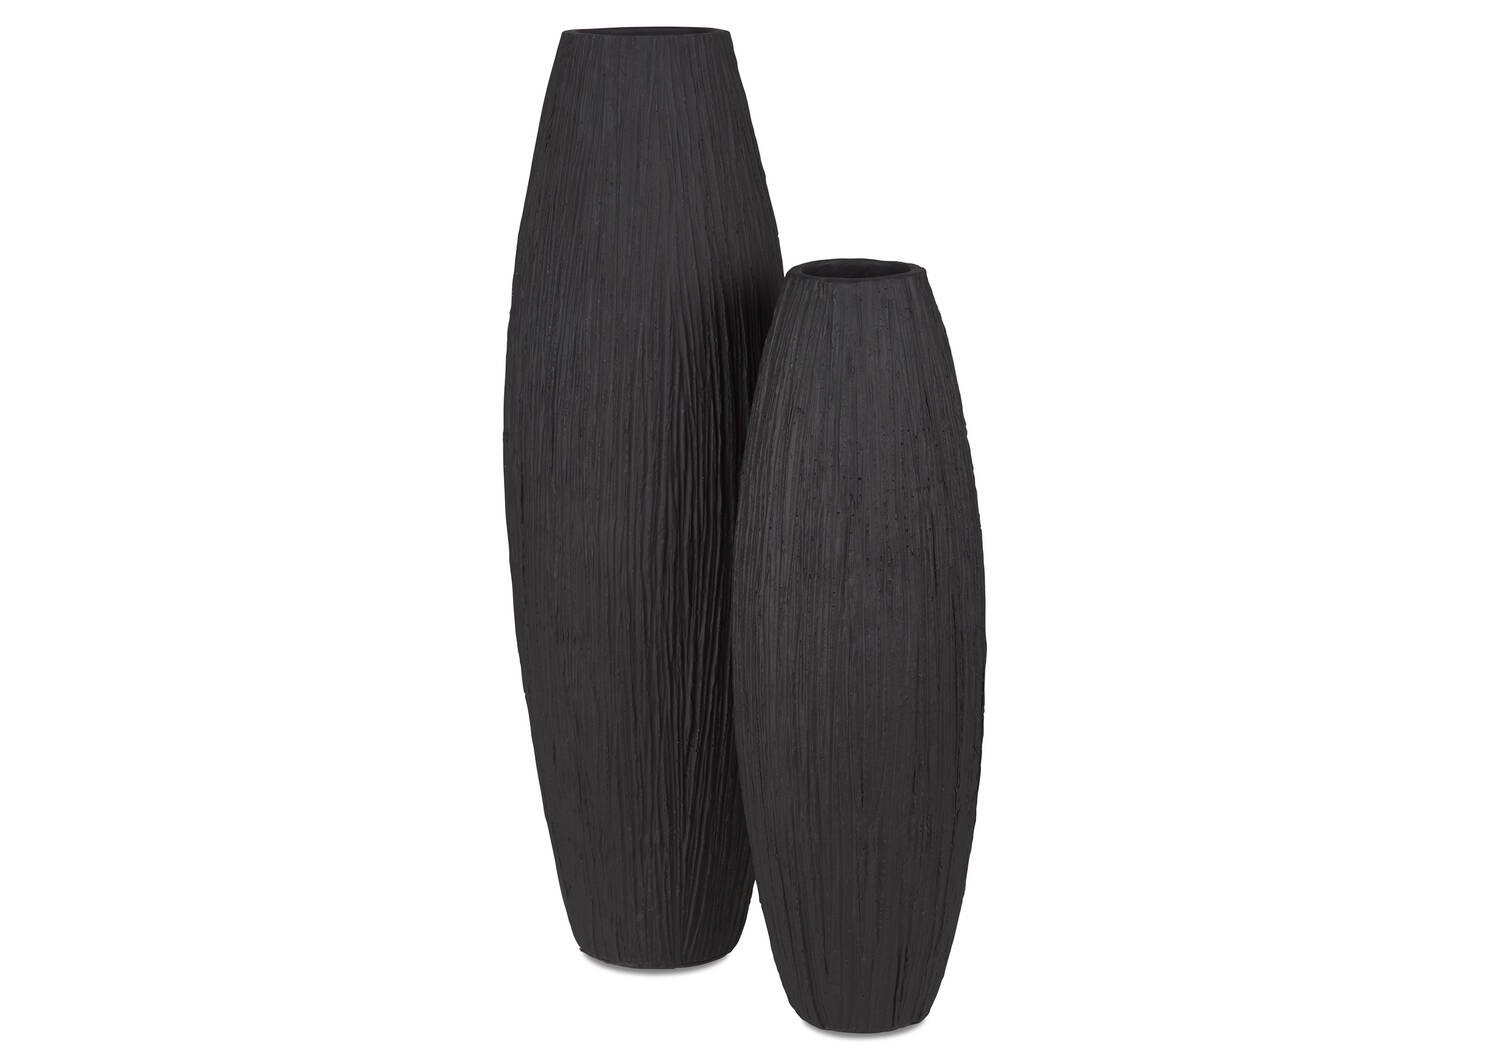 Cailee Vases -Black